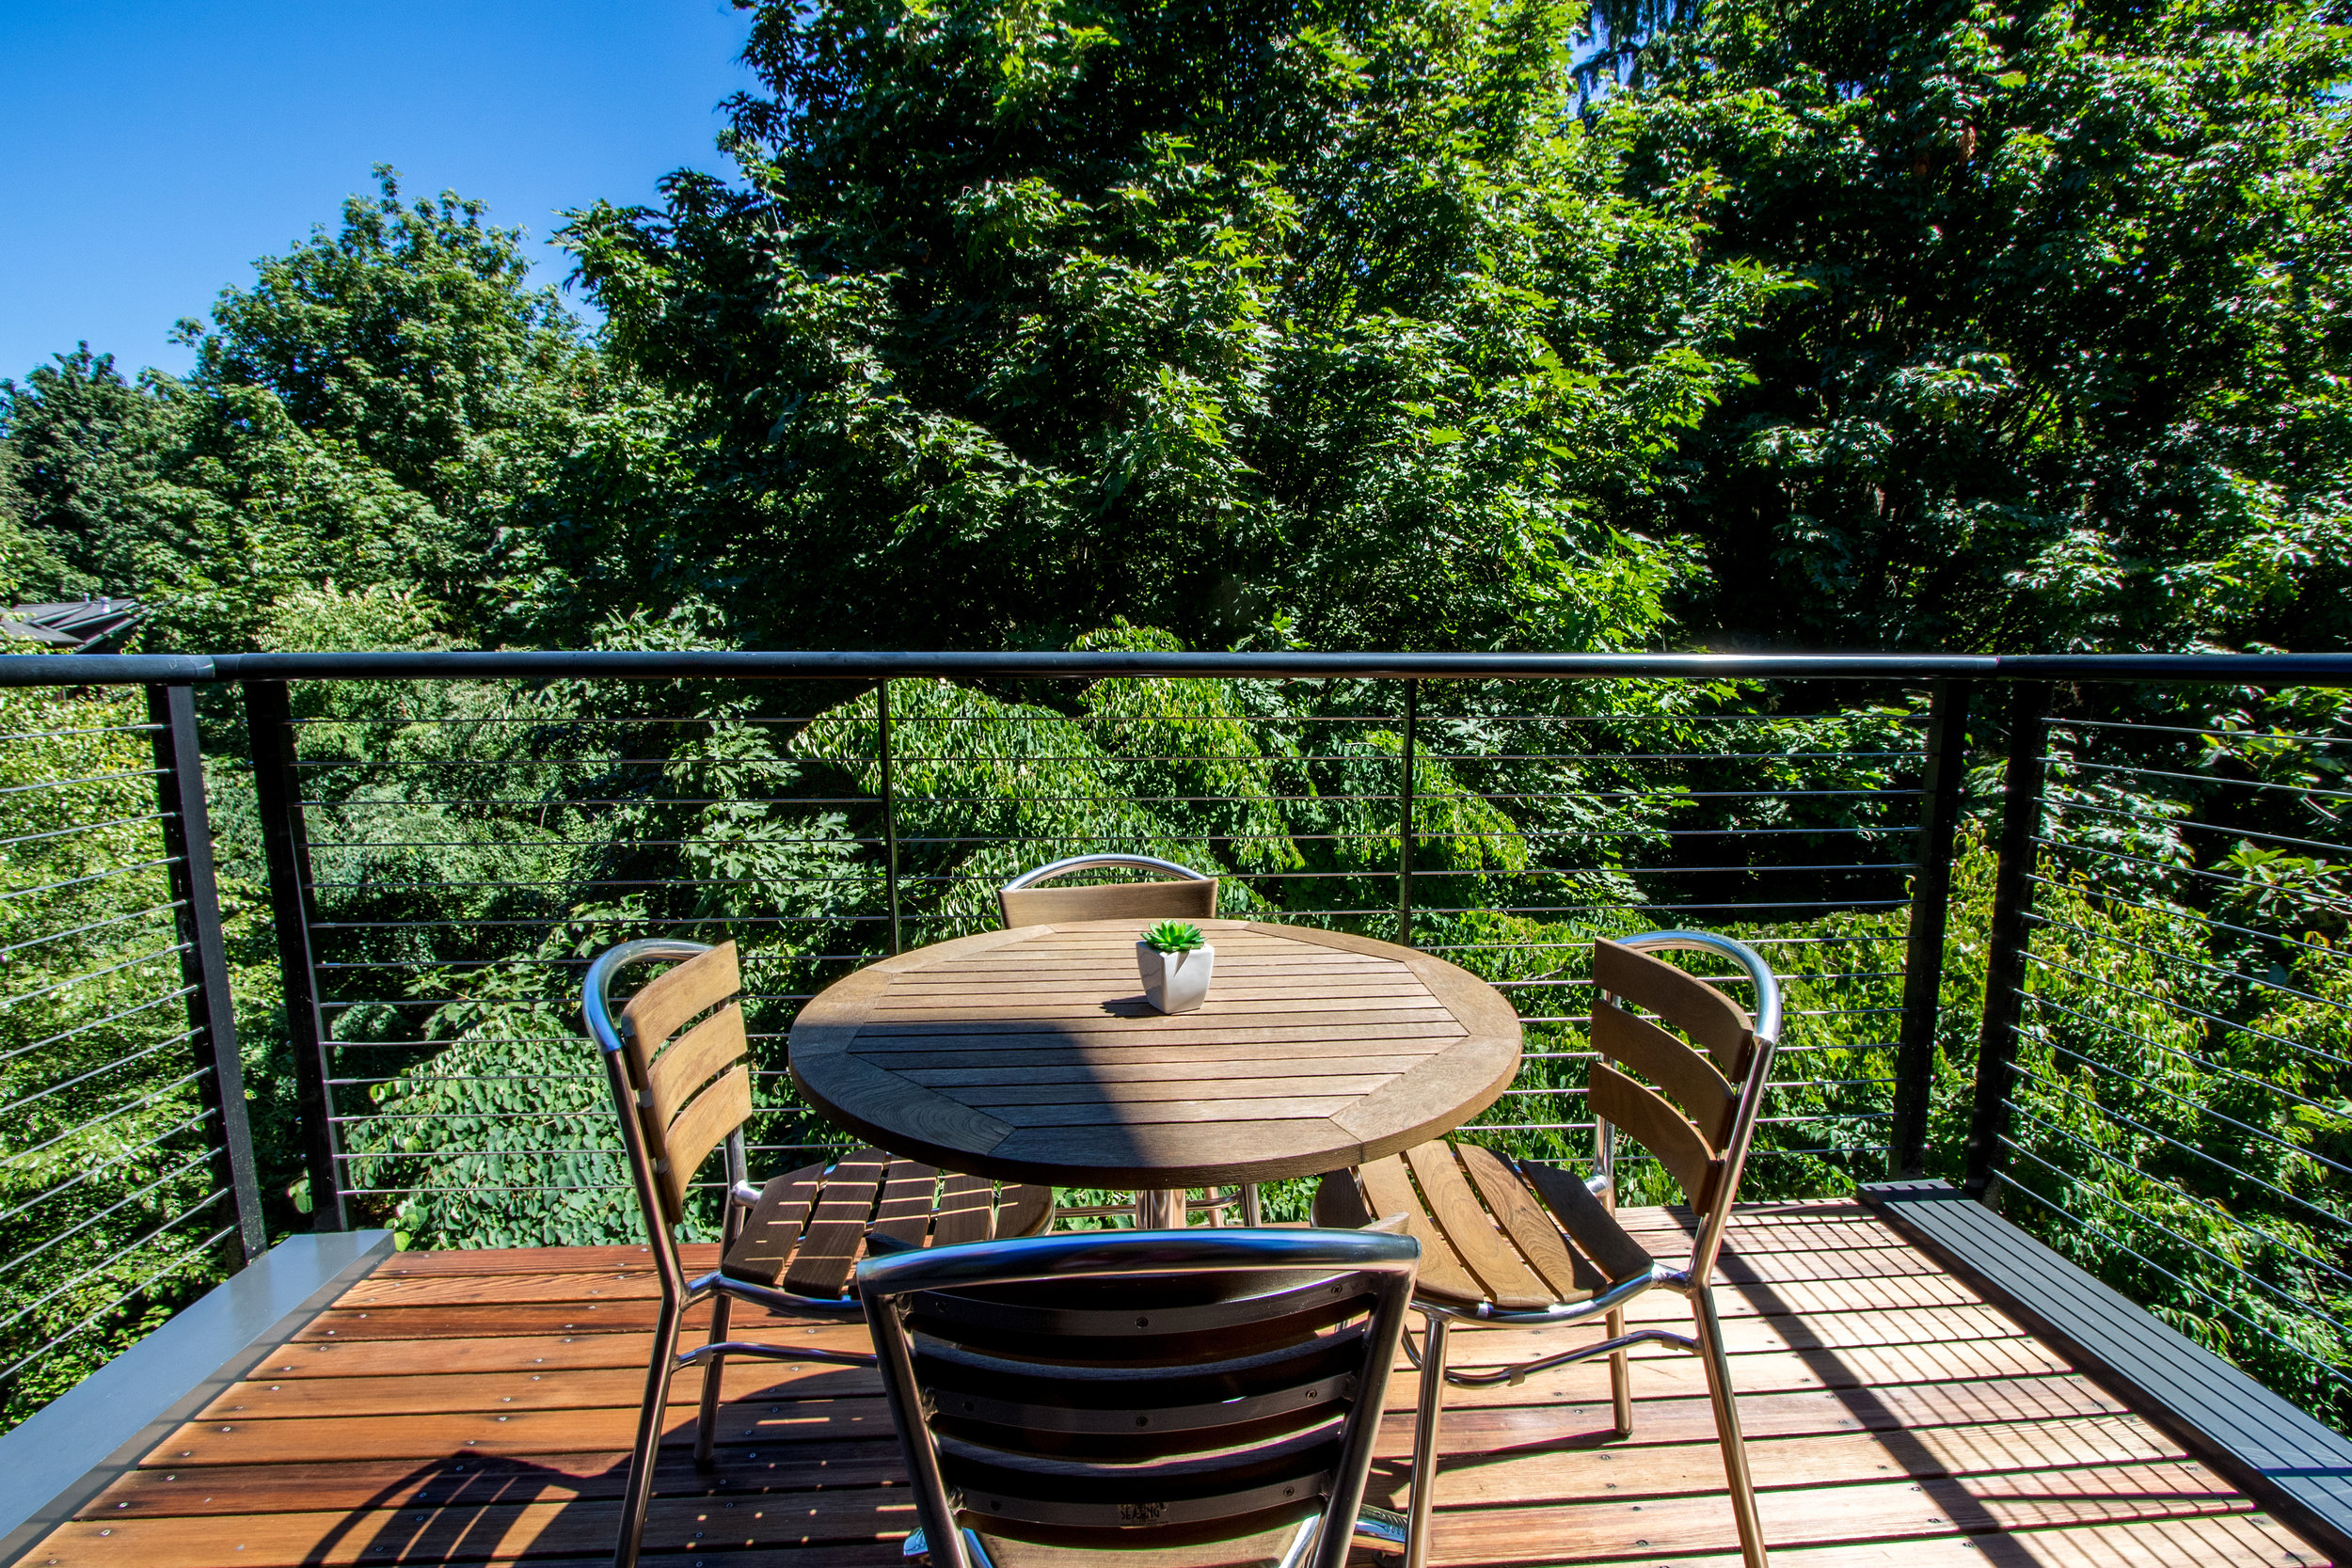 This deck off the living room is perfect for your morning coffee. You'll feel like you're on vacation every day with the rich, lush landscaping!